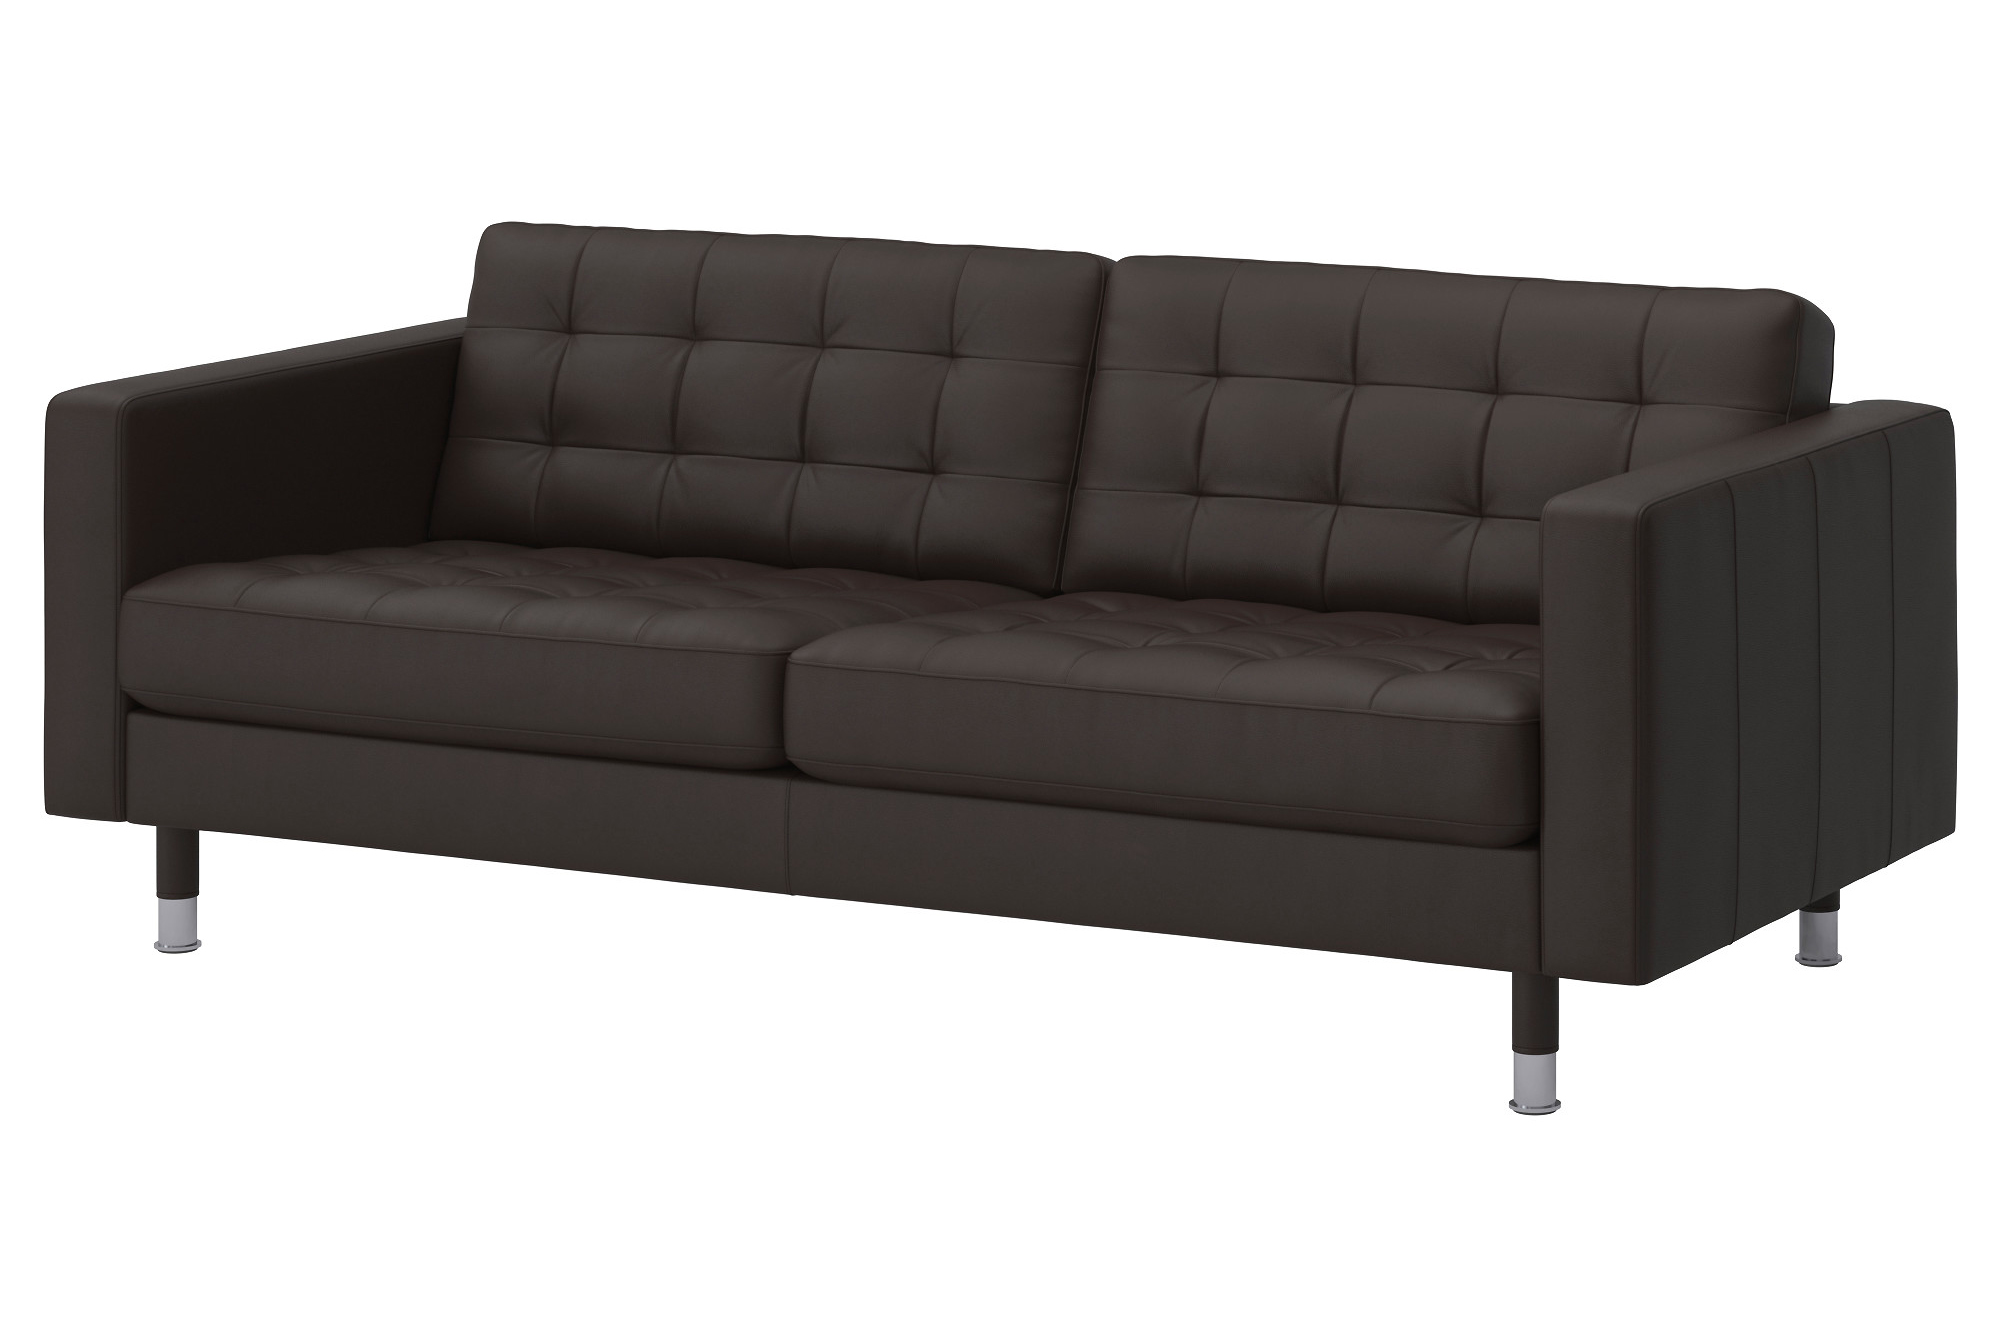 Incredible We Reviewed Ikea Sofas These Are The Most Comfortable We Andrewgaddart Wooden Chair Designs For Living Room Andrewgaddartcom